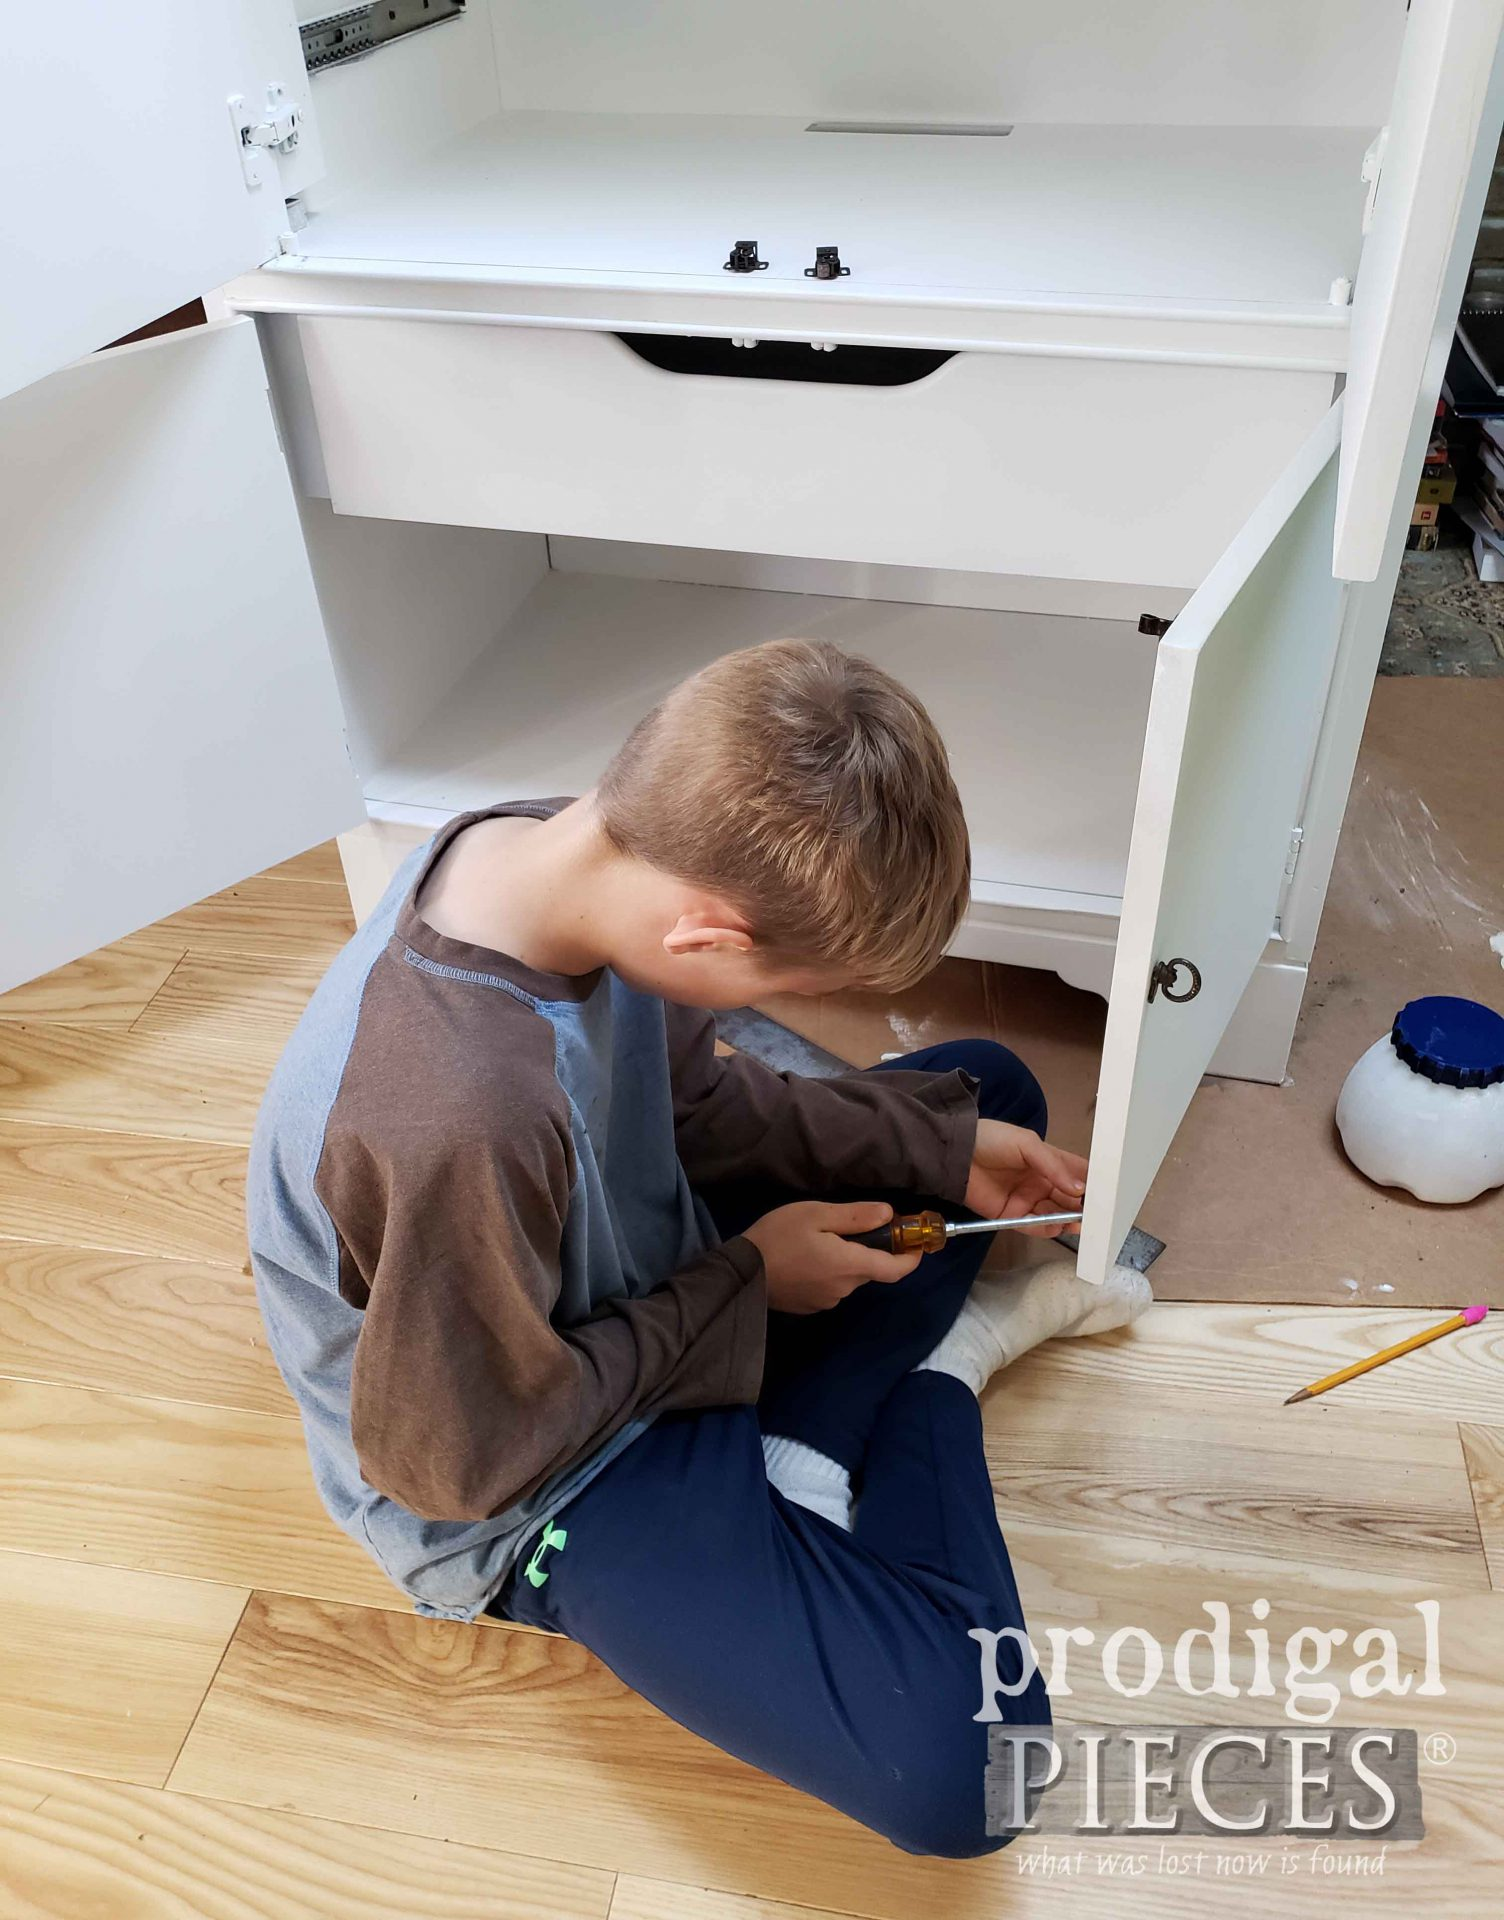 Young Son Helping Mama in Upcycle DIY | prodigalpieces.com #prodigalpieces #diy #home #homedecor #furniture #kids